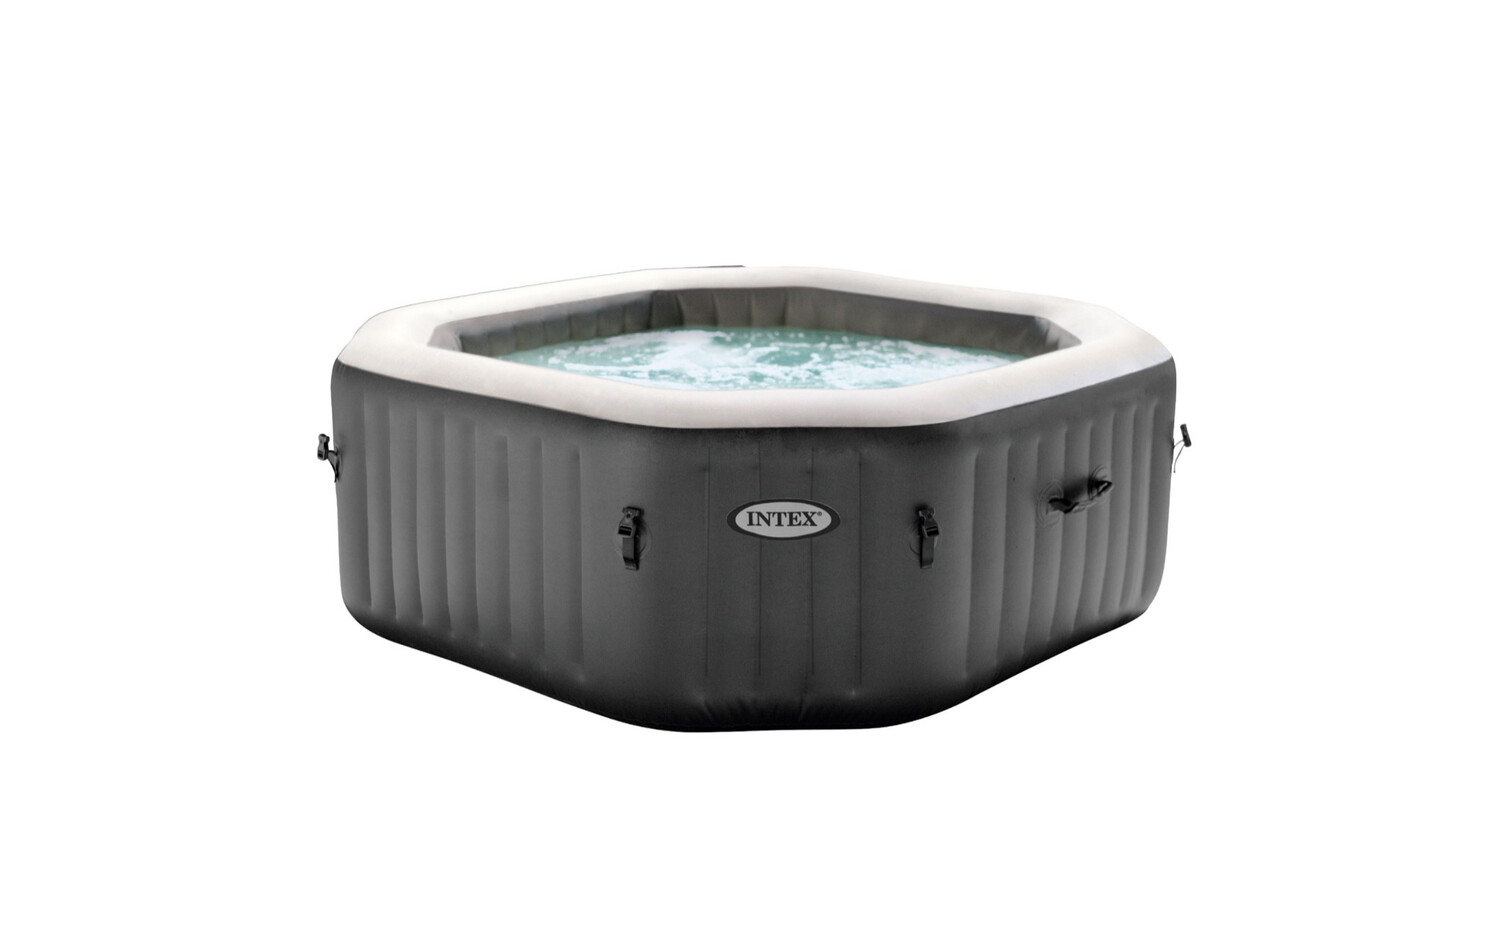 Intex PureSpa 120 Bubble Jets 4-Person Octagonal Portable Inflatable Hot Tub